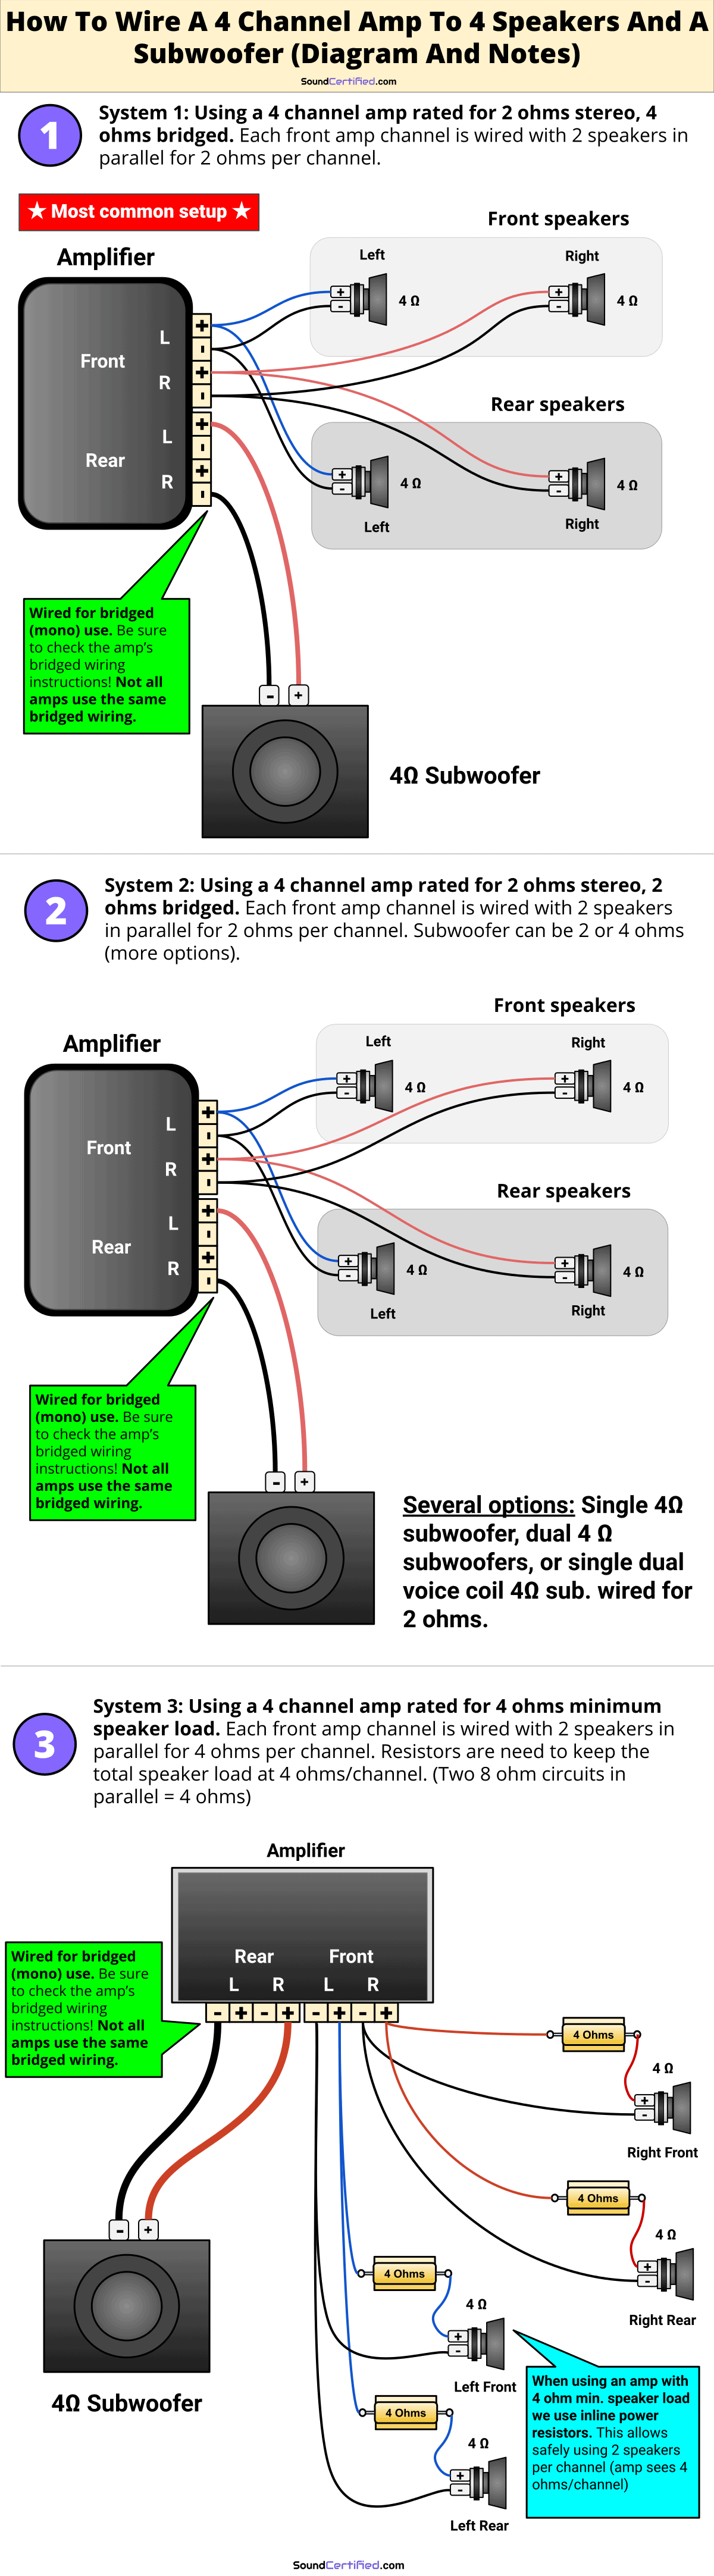 How To Wire A 4 Channel Amp To 4 Speakers And A Sub: A ...  Channel Amp Wiring Diagram Components on